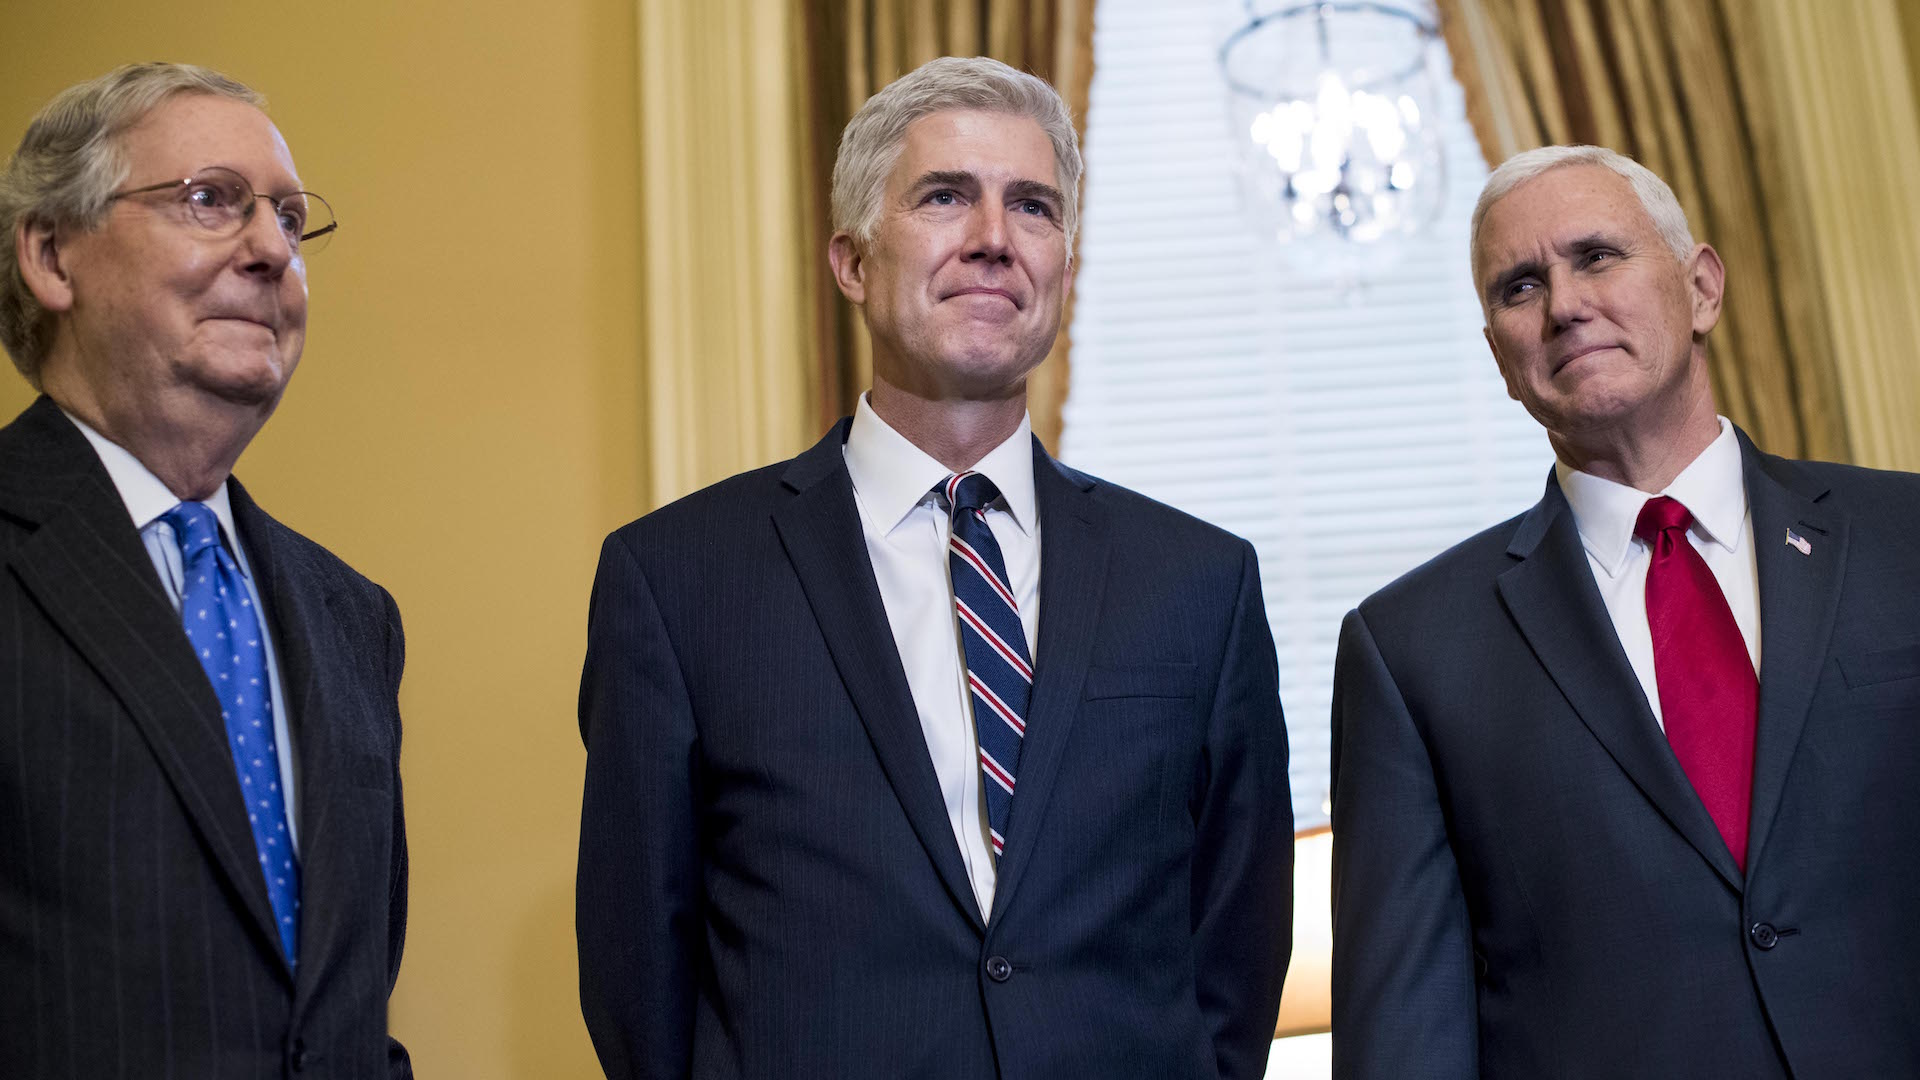 Here's your guide for dummies to Neil Gorsuch's confirmation to the Supreme Court